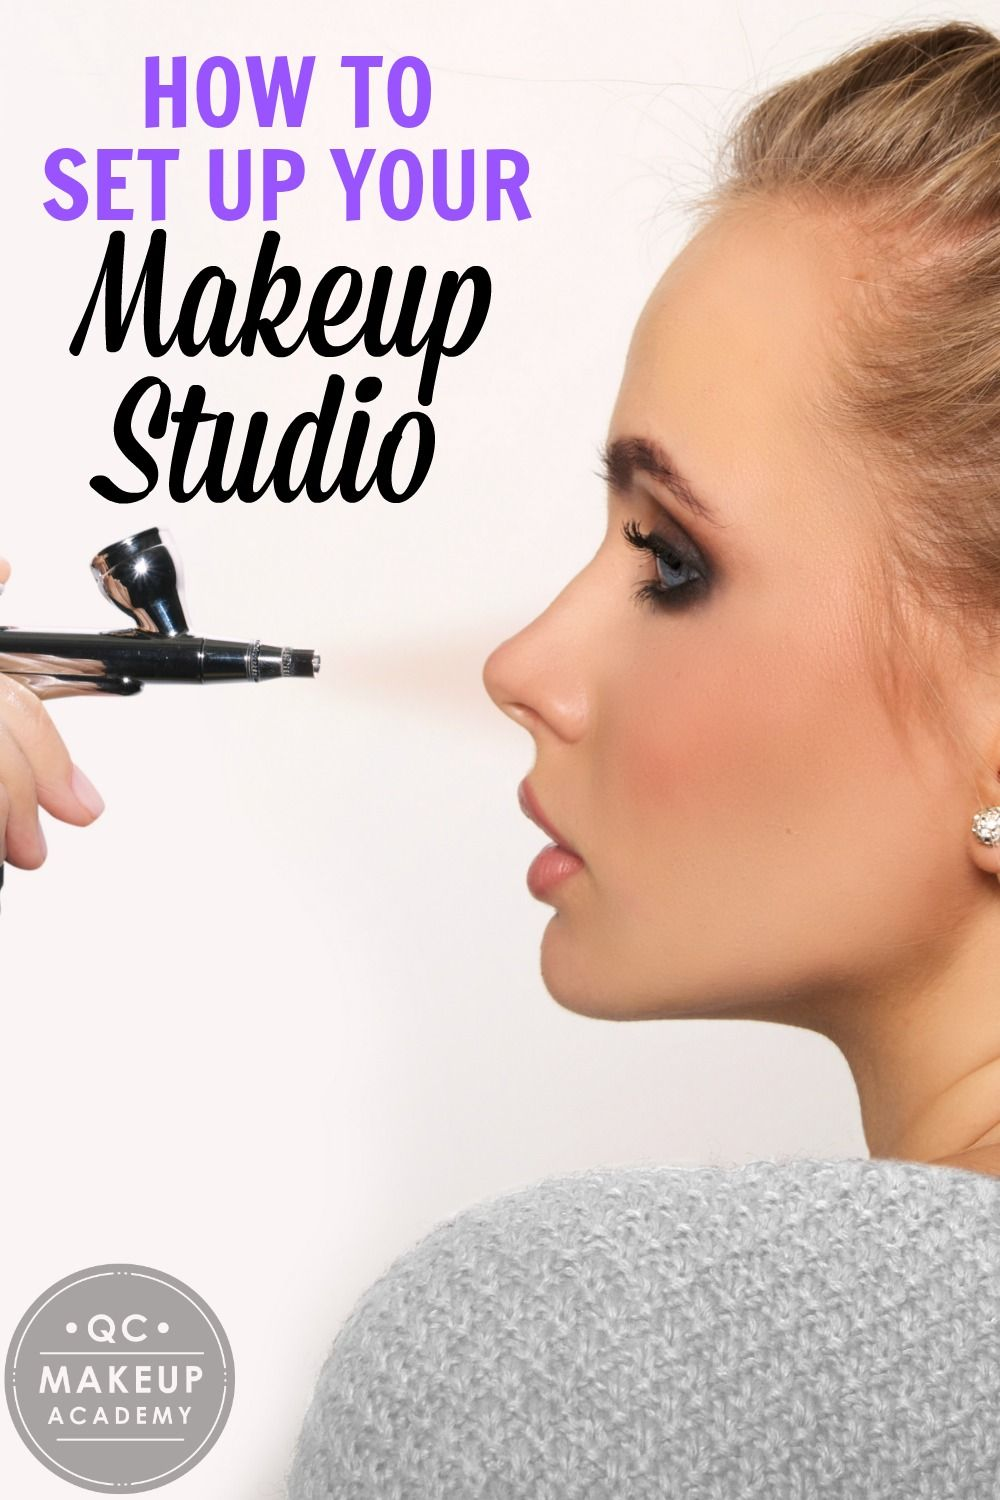 Learn How To Create A Fabulous Makeup Studio And Improve Your Makeup Artistry Qcmakeupacademy Makeup Makeupartist Learnmakeup Makeup Studio Makeup Academy Becoming A Makeup Artist